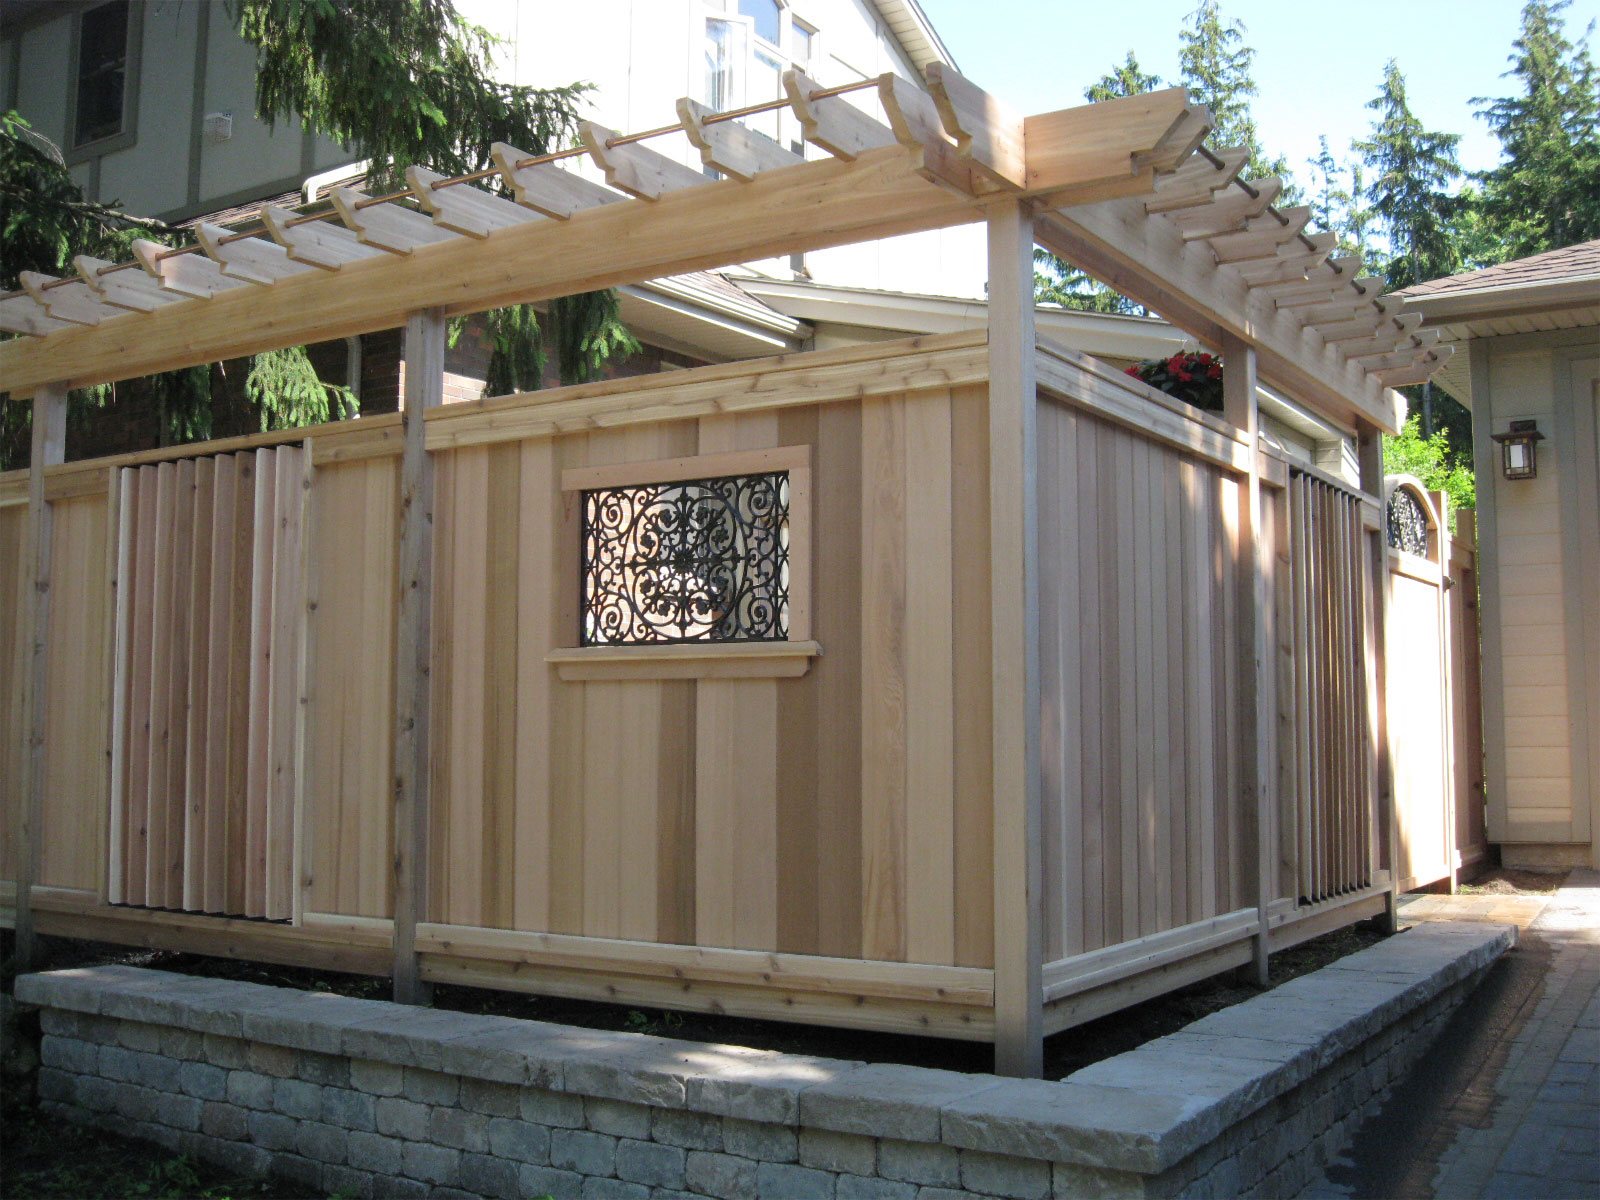 Custom Cedar Privacy Fence - Ornamental Iron